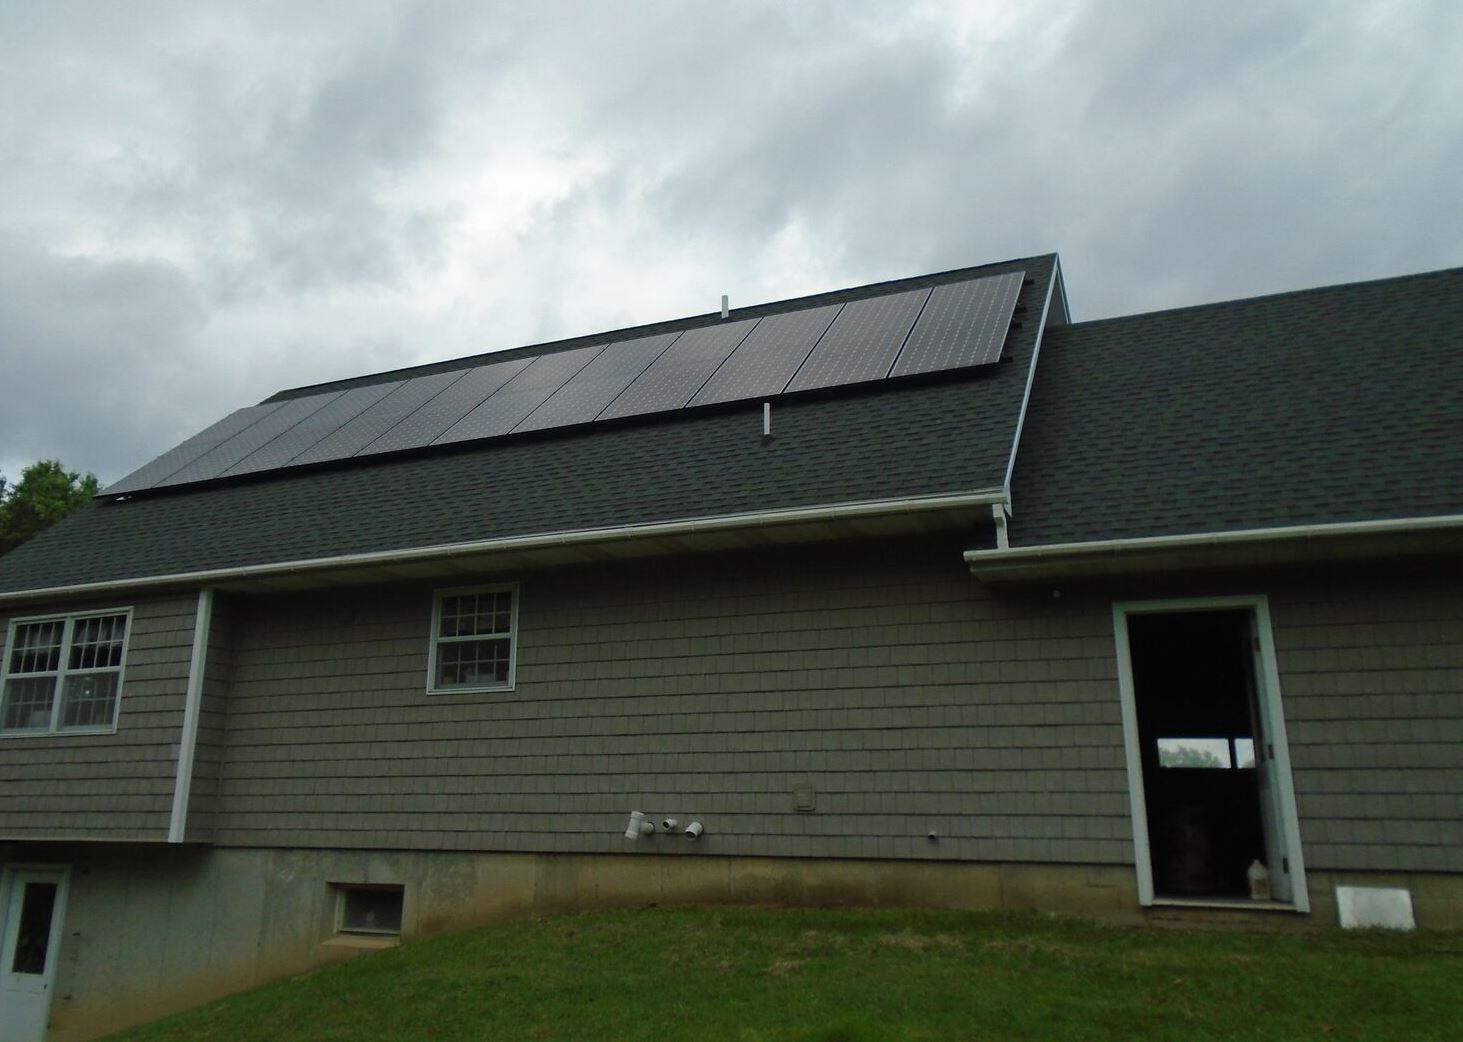 Solar Panel Install in Dansville, NY  - After Photo